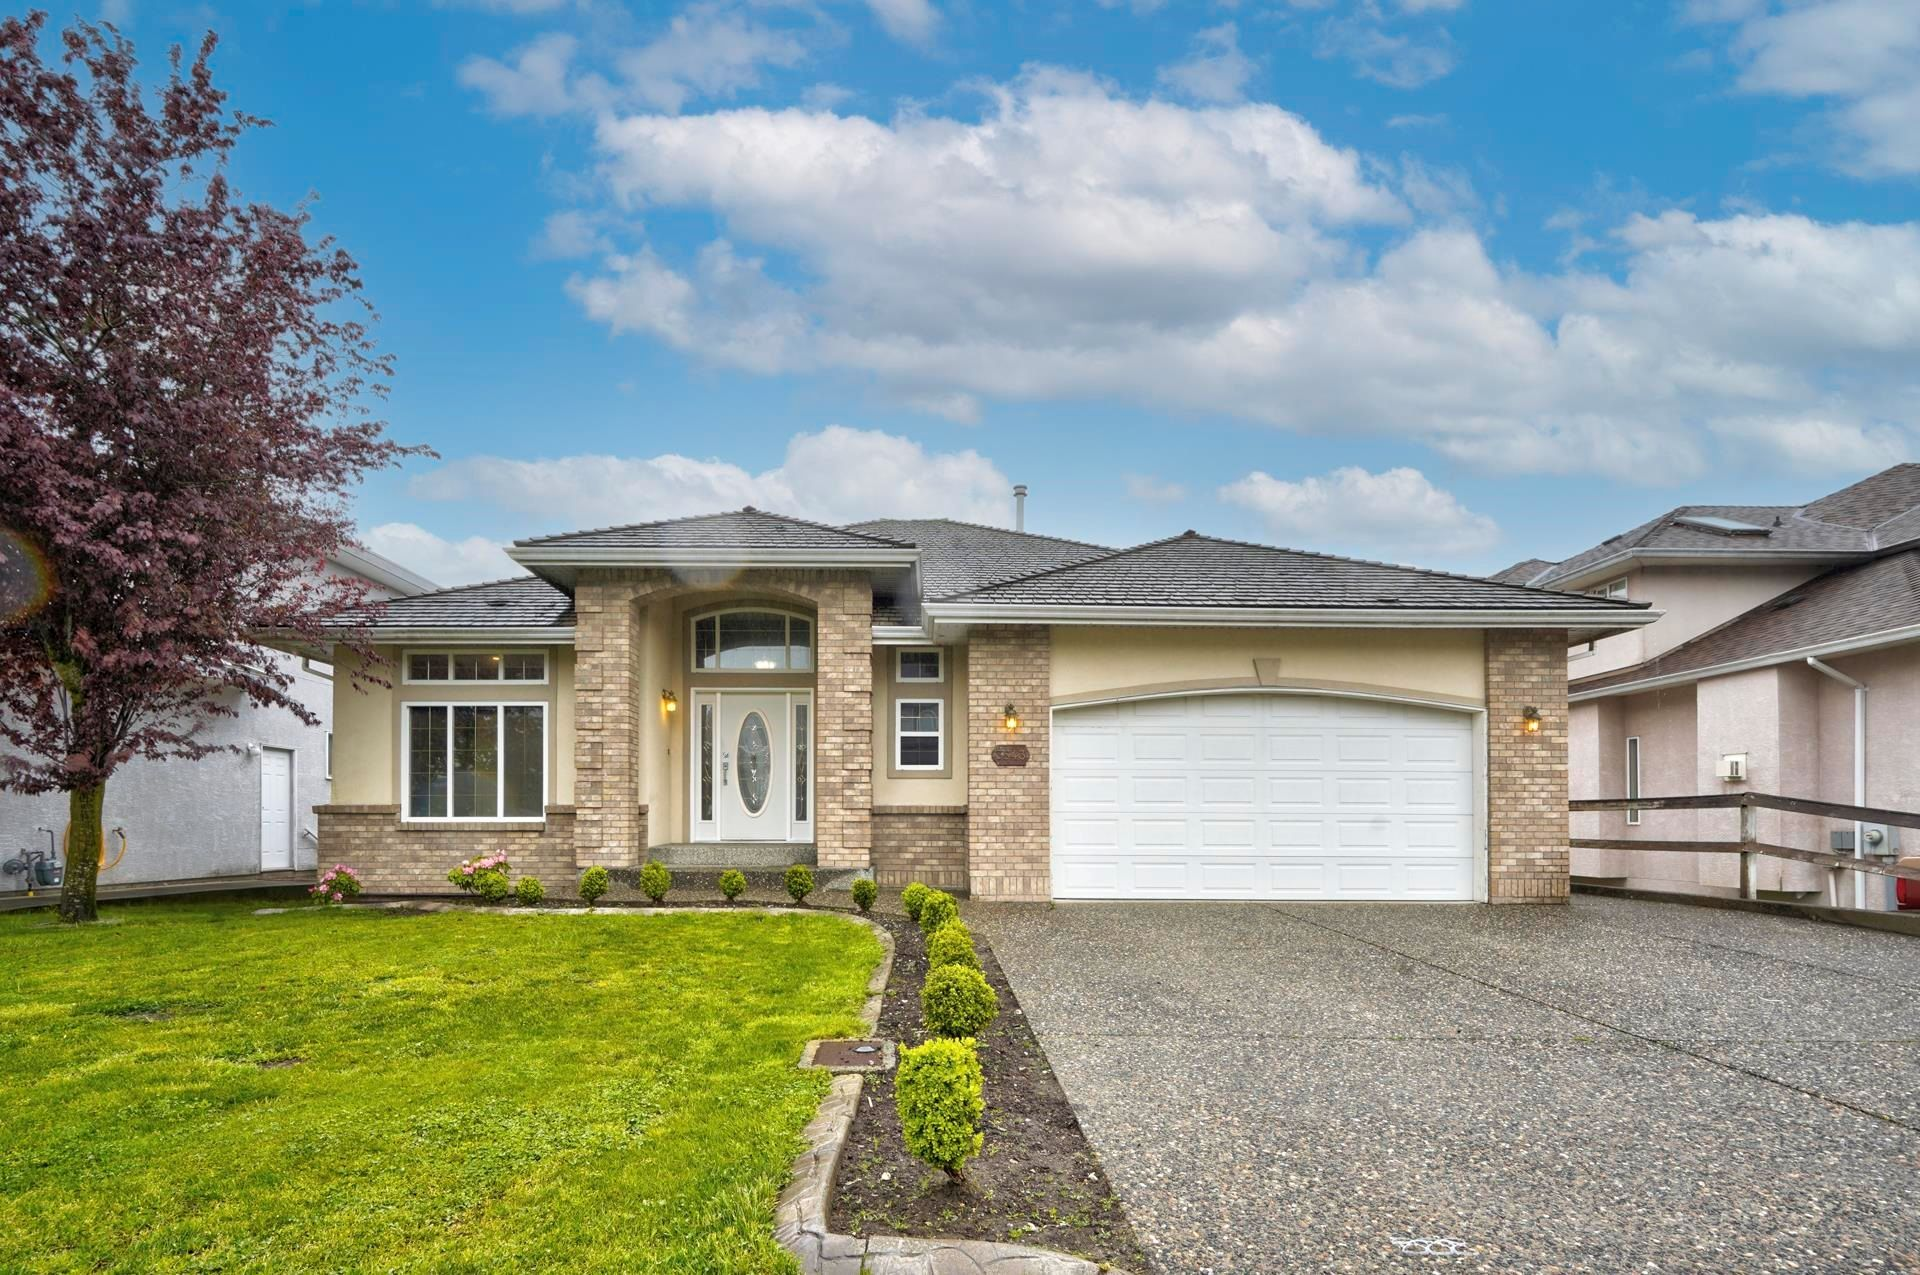 """Main Photo: 3543 SUMMIT Drive in Abbotsford: Abbotsford West House for sale in """"NORTH-WEST ABBOTSFORD"""" : MLS®# R2609252"""